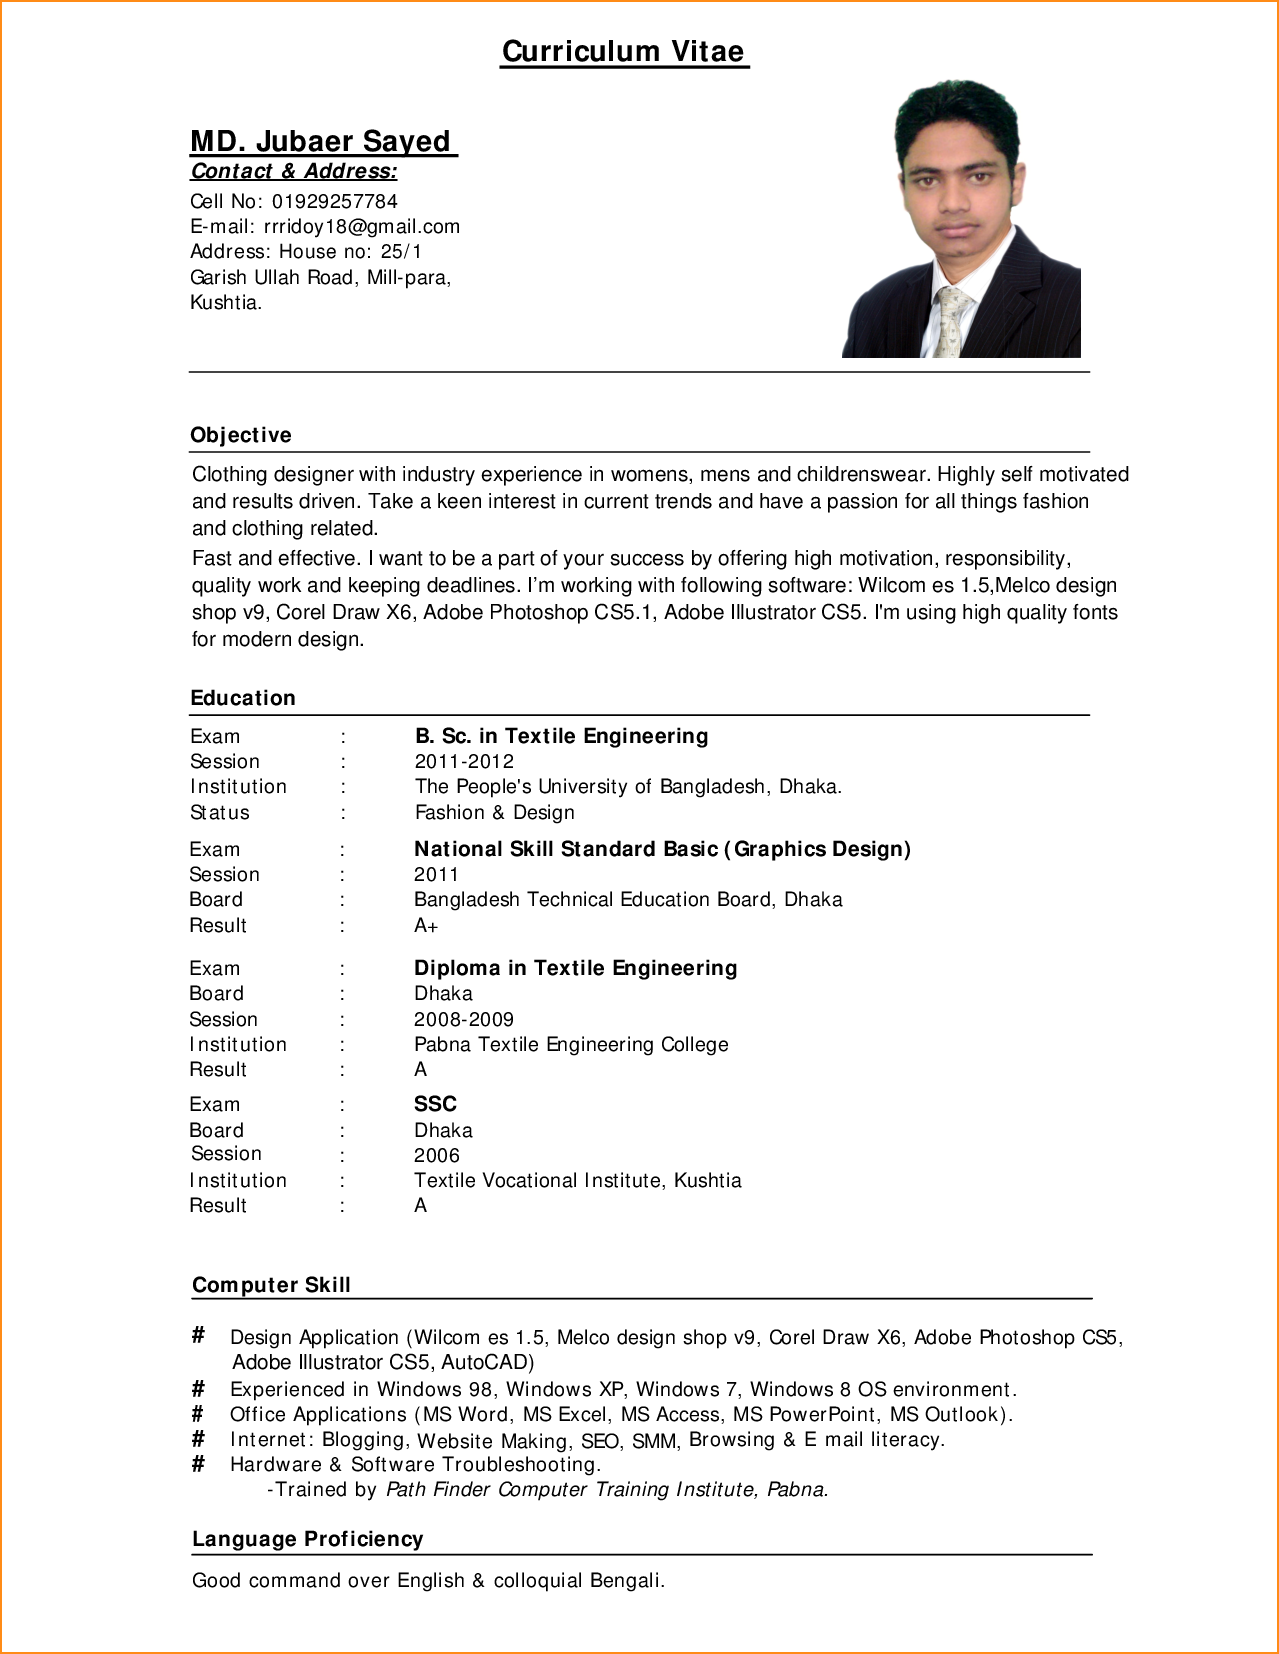 Curriculum Vitae Examples For Job Application